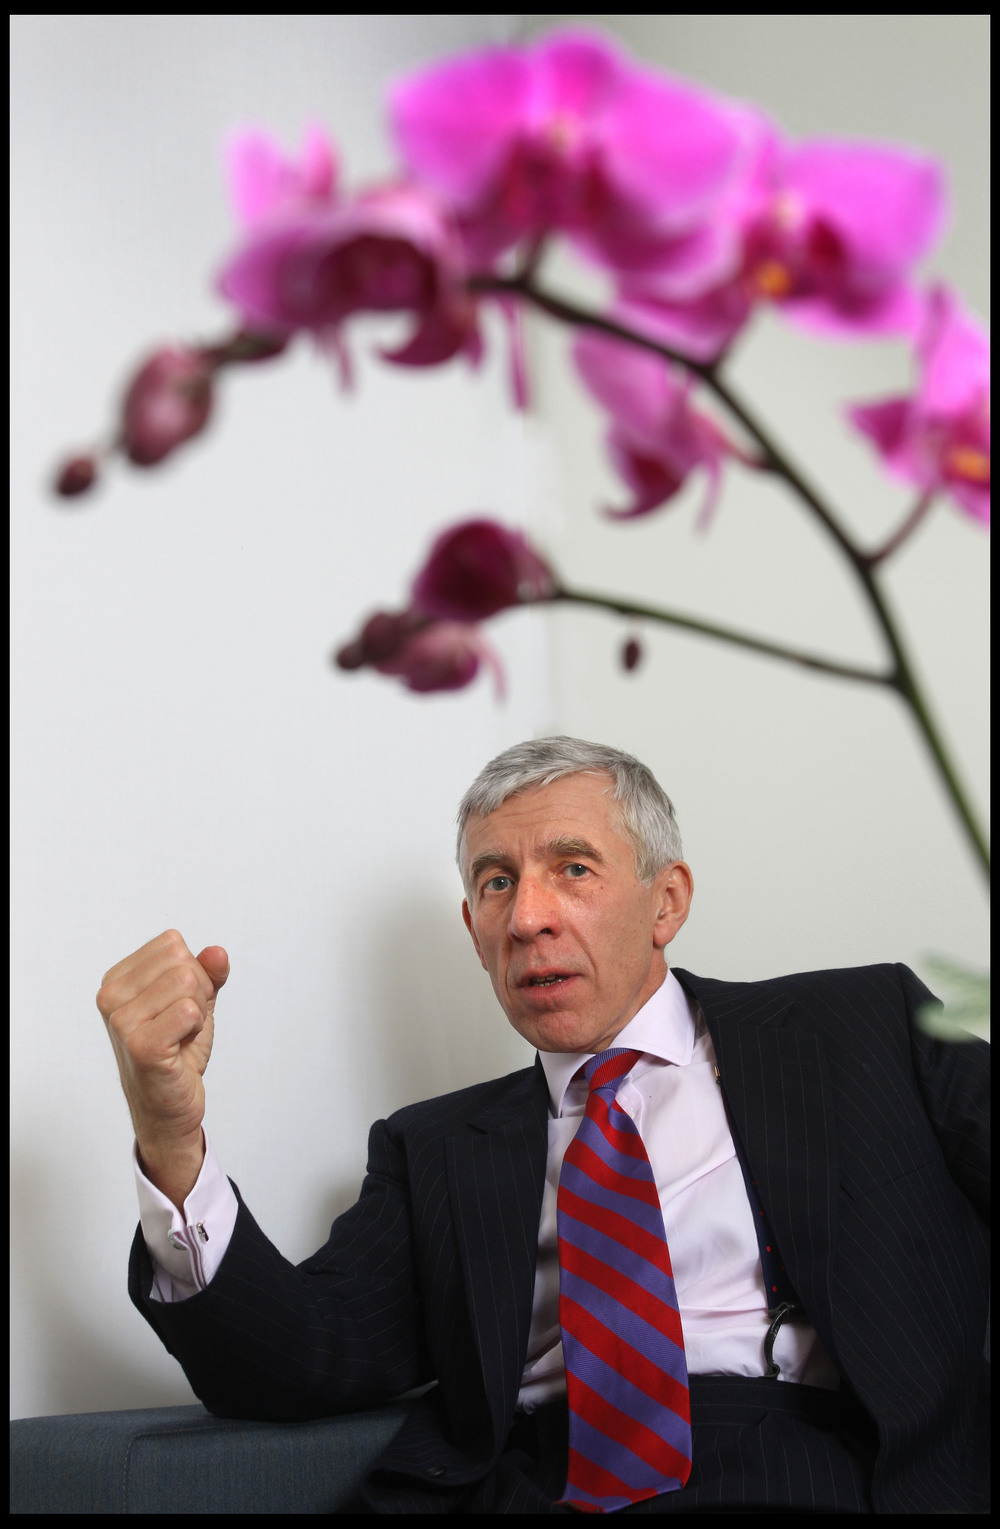 Jack Straw, politician